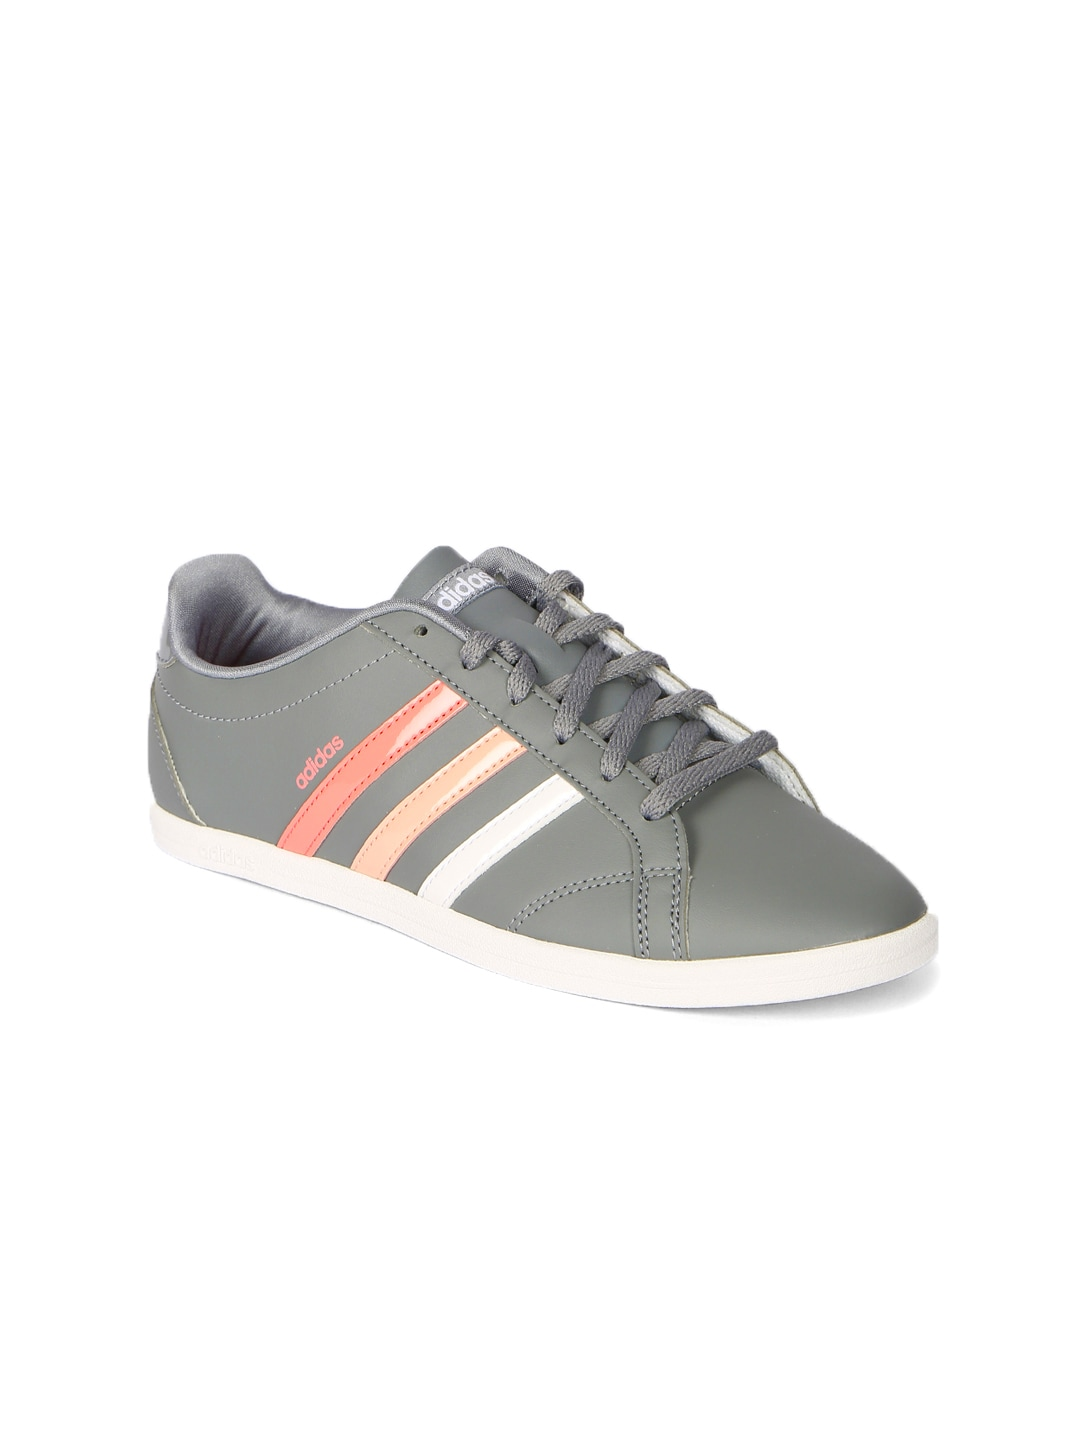 Coneo QT VS WhitePinkPurple Women's Casuals Adidas Neo